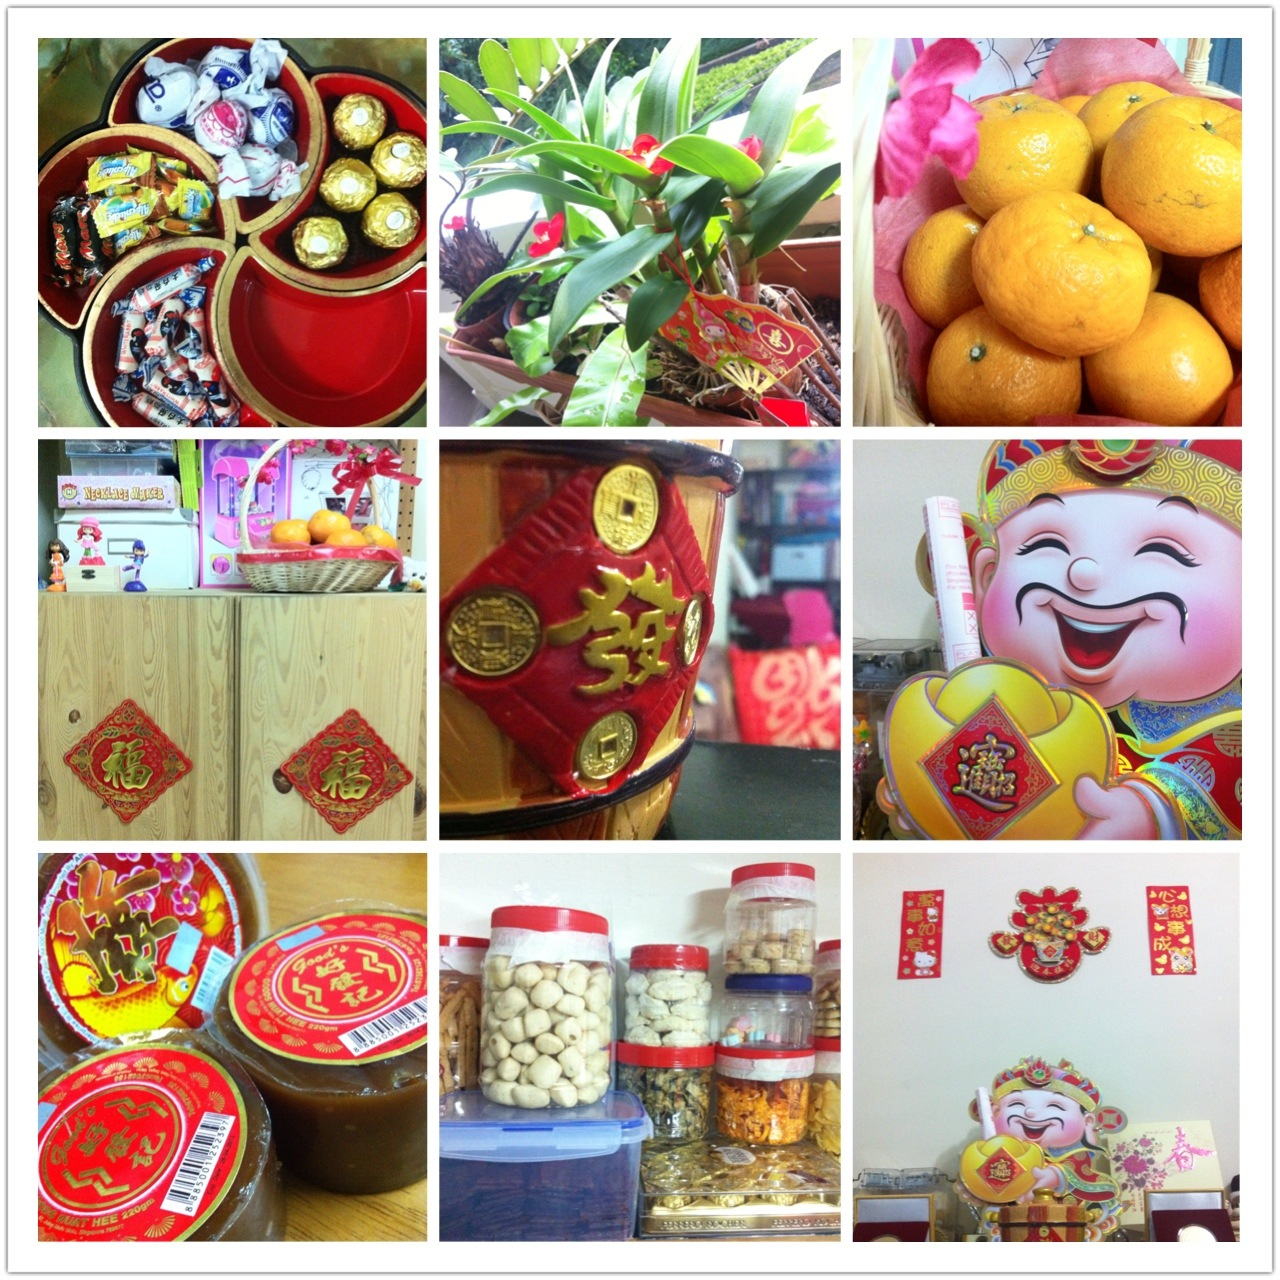 Chinese new year decorations at home adrian video image for Chinese home decorations